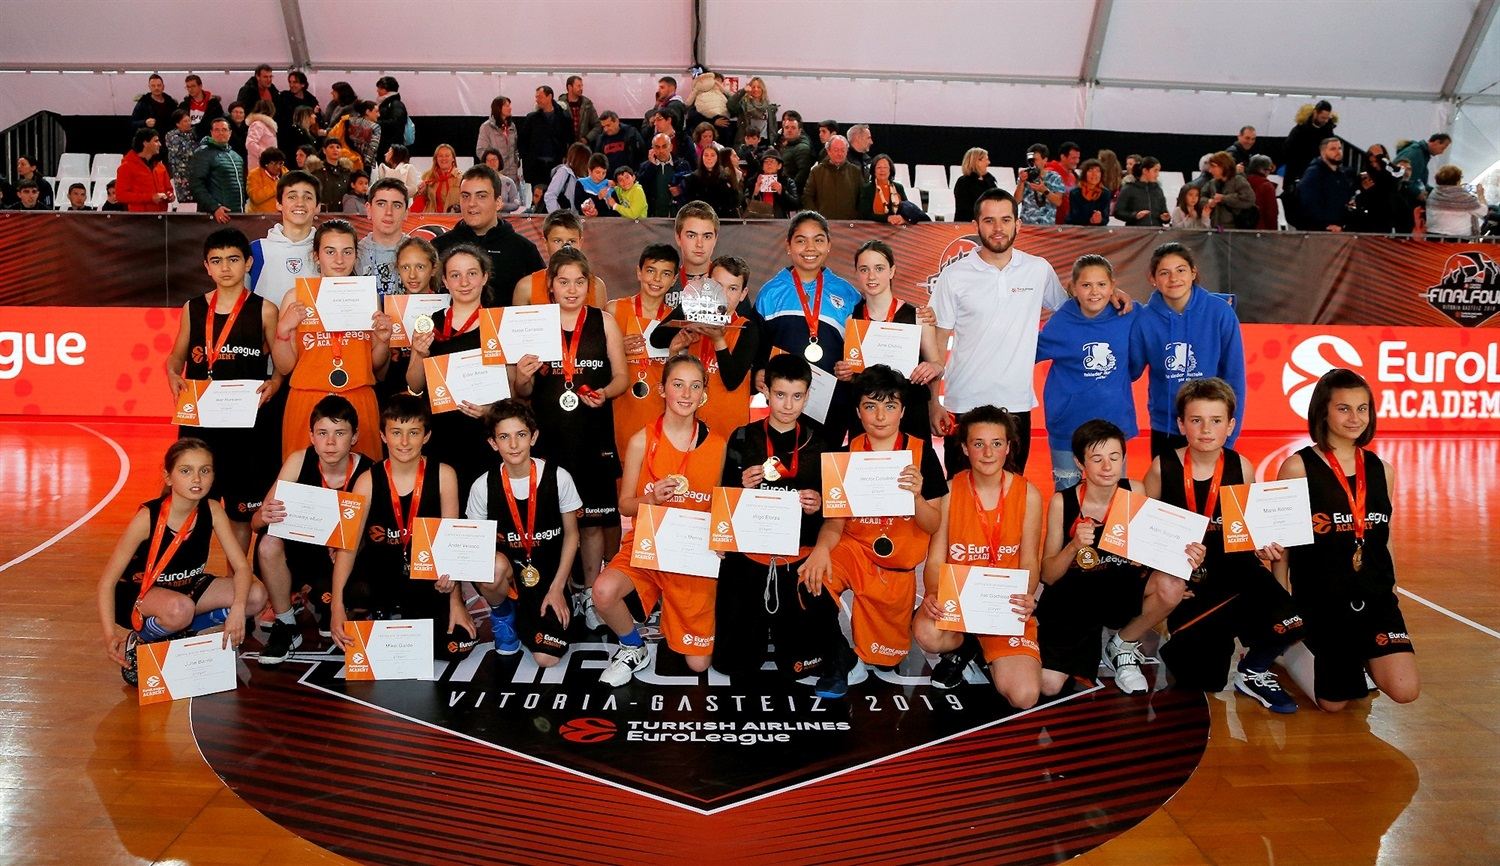 EuroLeague Academy at FanZone - Final Four Vitoria-Gasteiz 2019